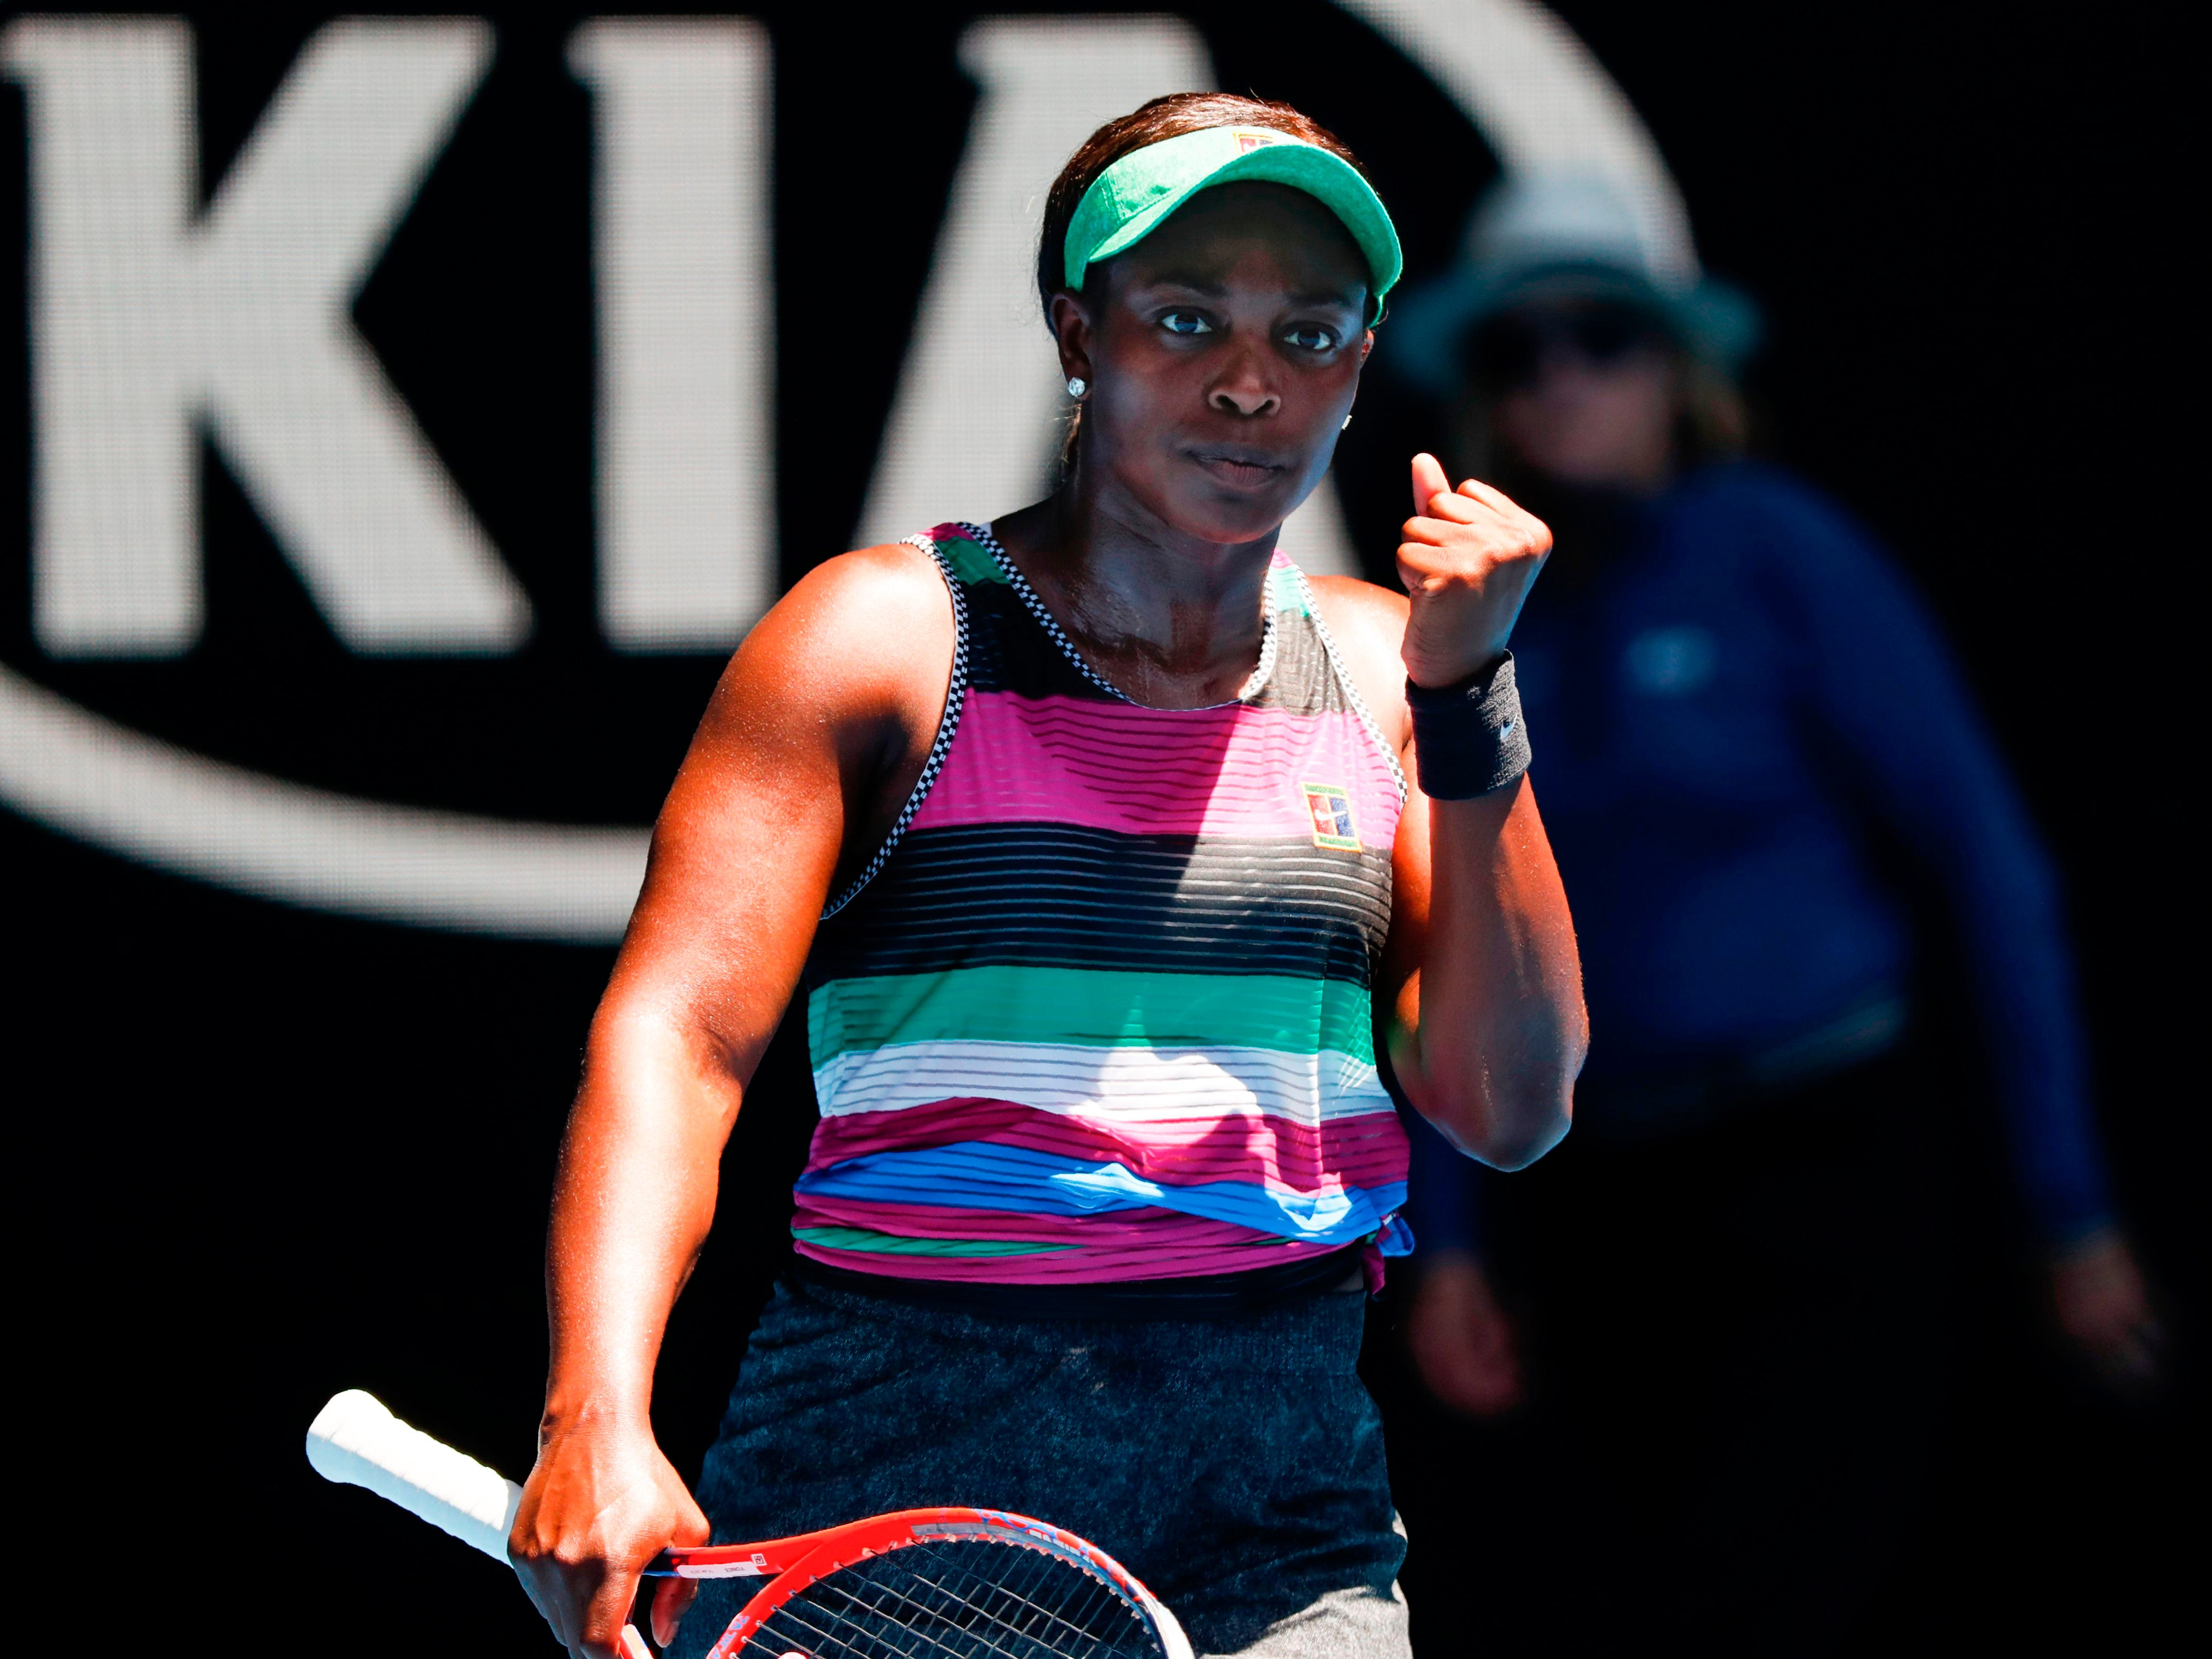 No. 5 seed Sloane Stephens reacts after winning a point during her 6-4, 6-2 win over American compatriot Taylor Townsend in the first round.